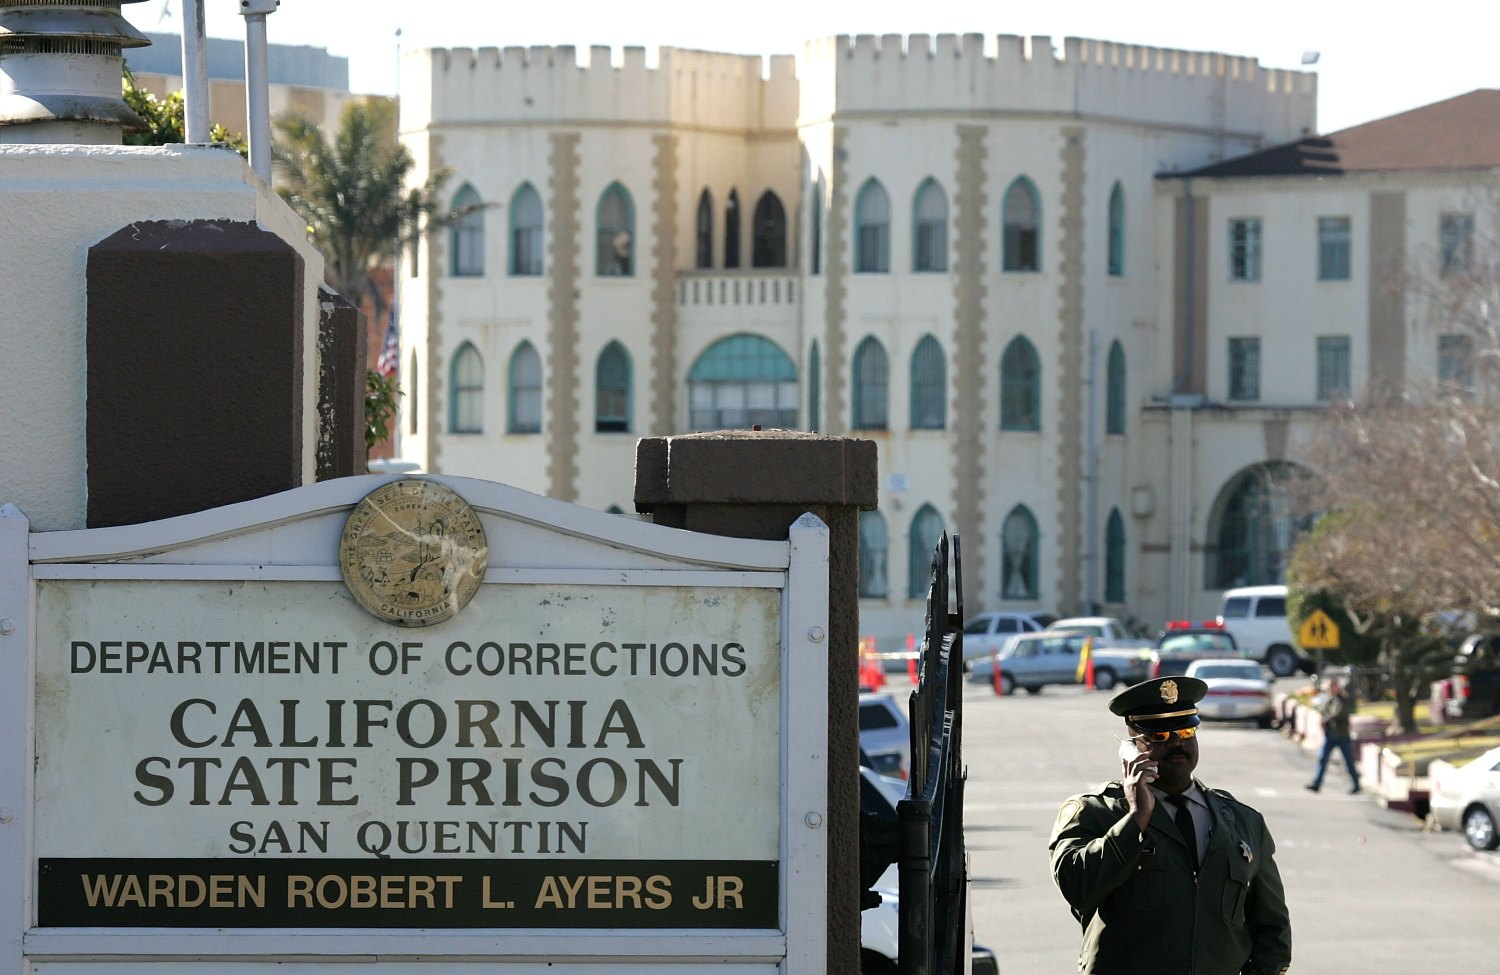 California DOC prison